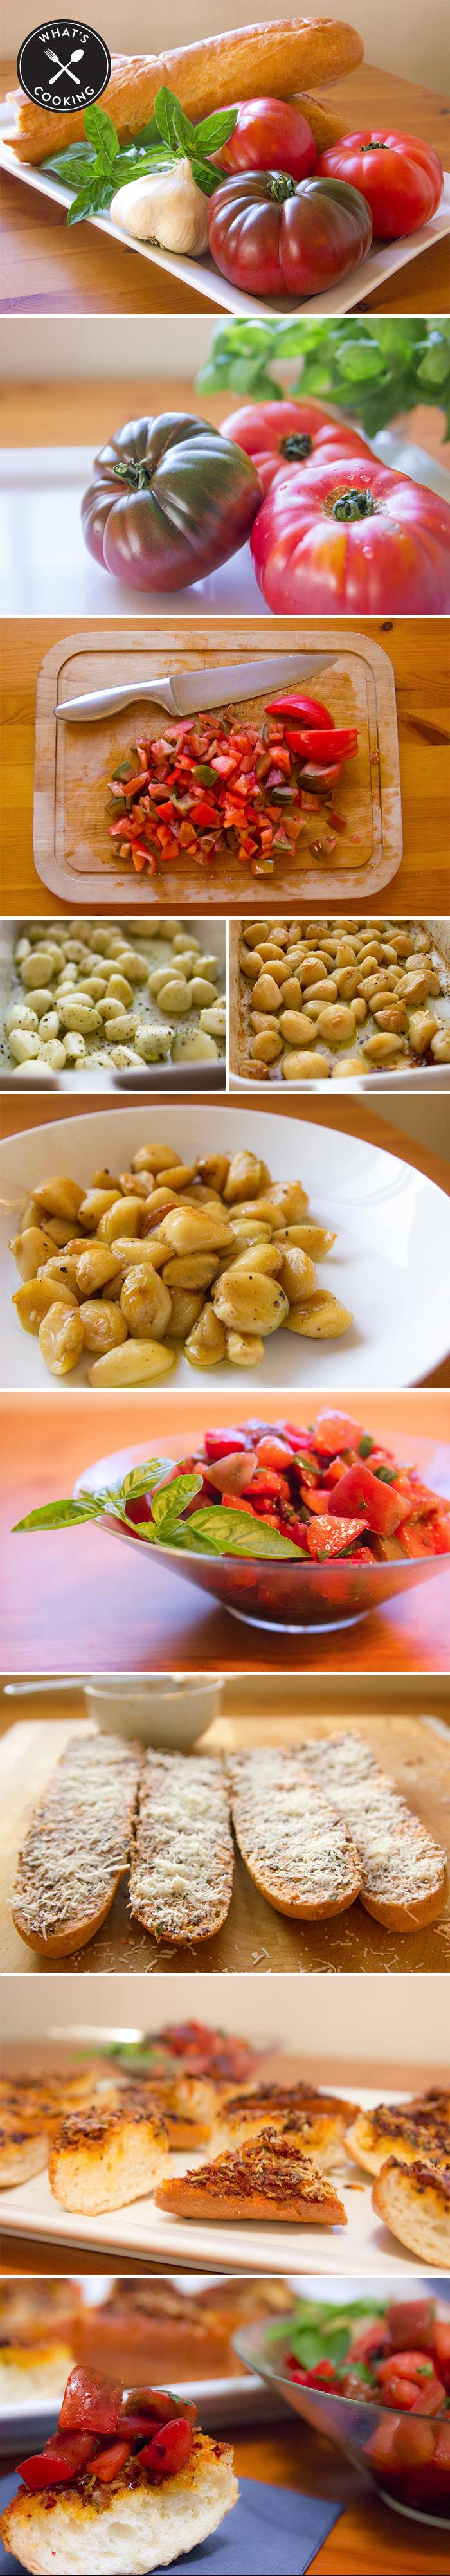 ... -to make the perfect roasted garlic bruschetta with tomato and basil